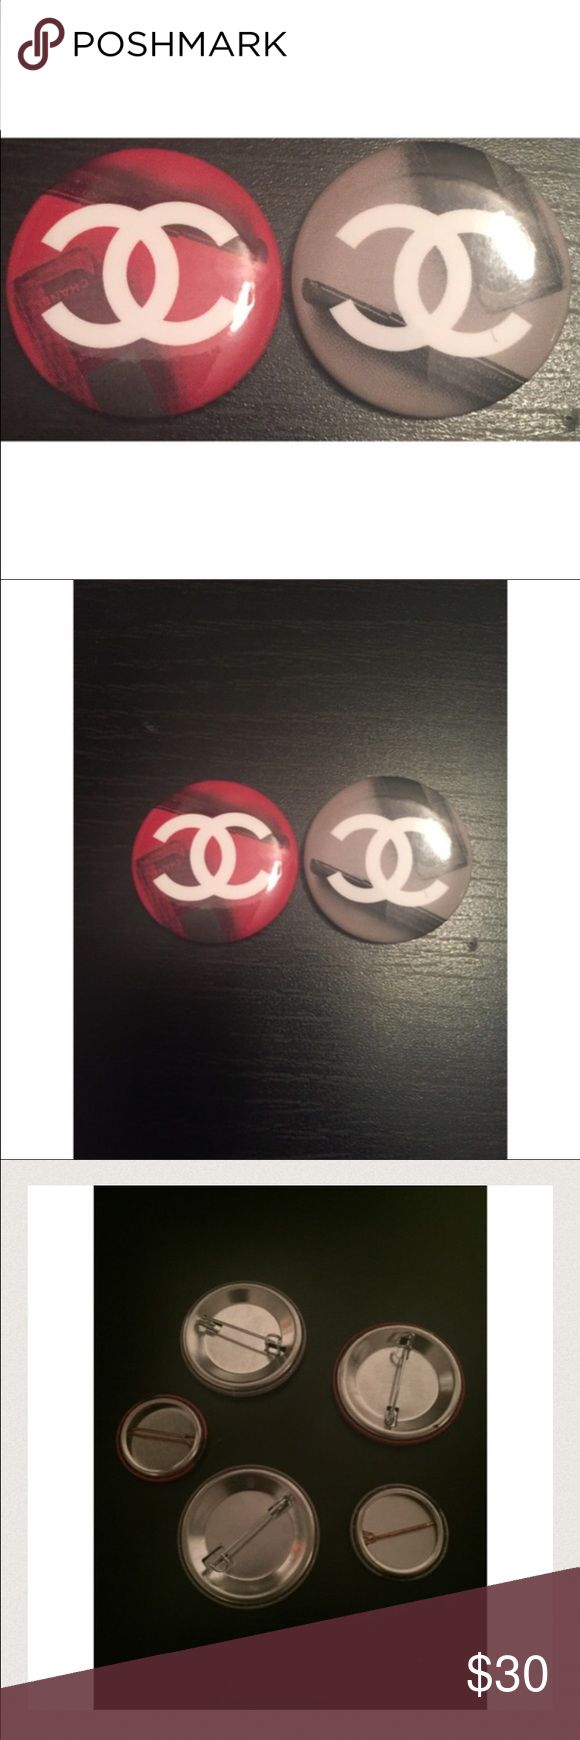 """Sale! Small """"CC"""" Chanel Limited Edition Pin This is a rare and limited edition 1"""" pin from the 2016 I Love Coco Chanel Oscar Party/Pop Up in Los Angeles. The item was specifically created for the event at Bar Marmont. I'm selling 2 red, 2 grey, 1 pink, and 1 gold. These are very chic pinned on a Chanel purse or jacket lapel. I've attached a large one to the chainlink strap on my vintage black quilted! CHANEL Accessories"""